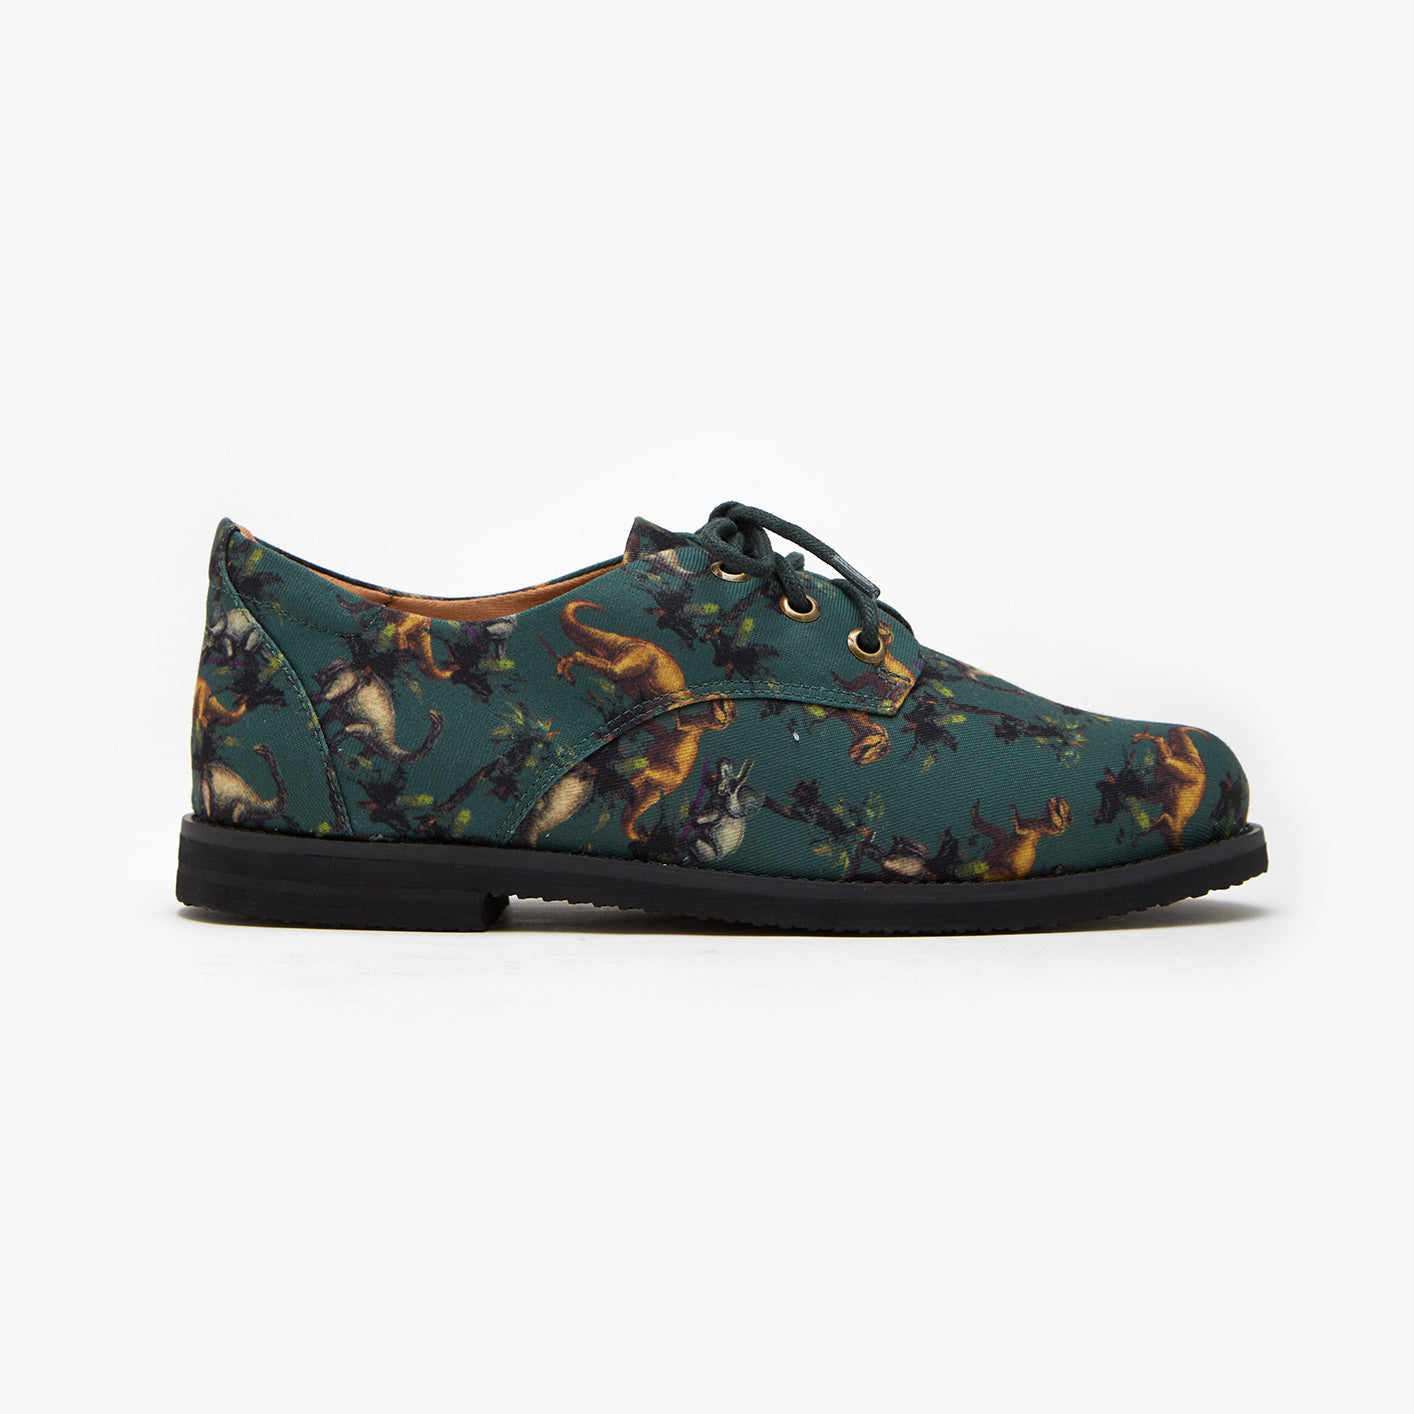 DINOS OXFORD - Insectashoes brasil